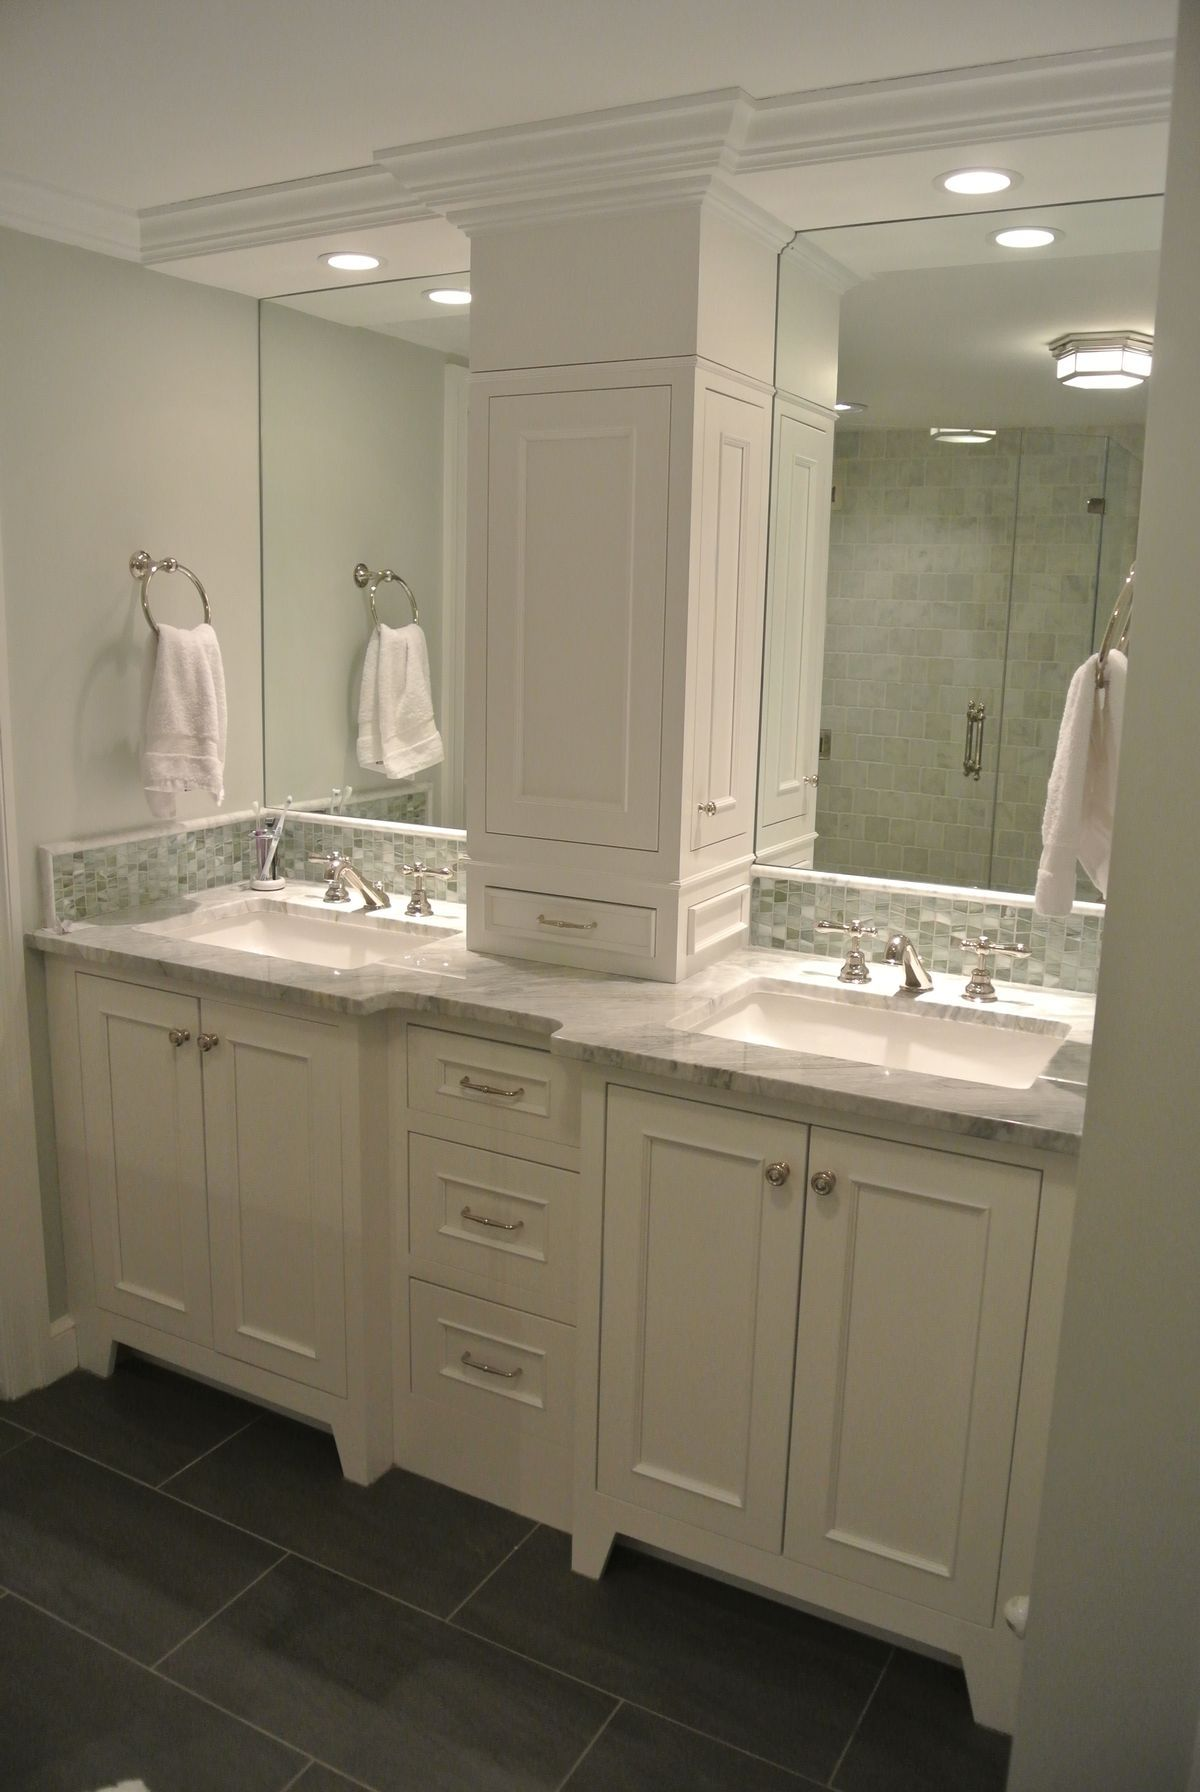 kitchen cabinets with legs two level island ikea bathroom vanities: a linen closet on the countertop